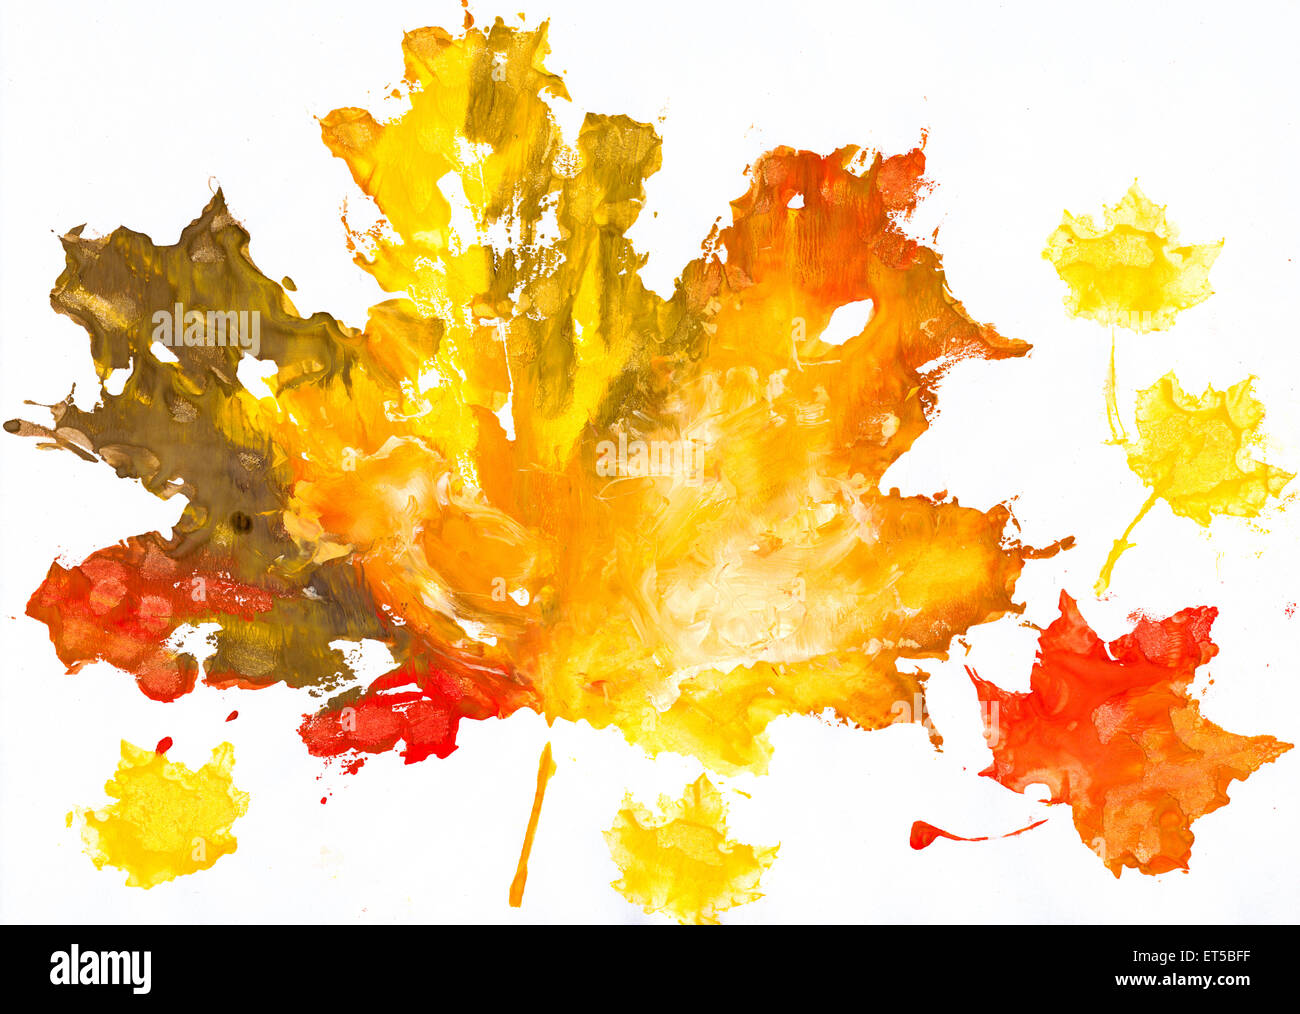 Fall Leaves Watercolor Wallpaper Autumn Leaves Watercolor Print On Paper Child Drawing